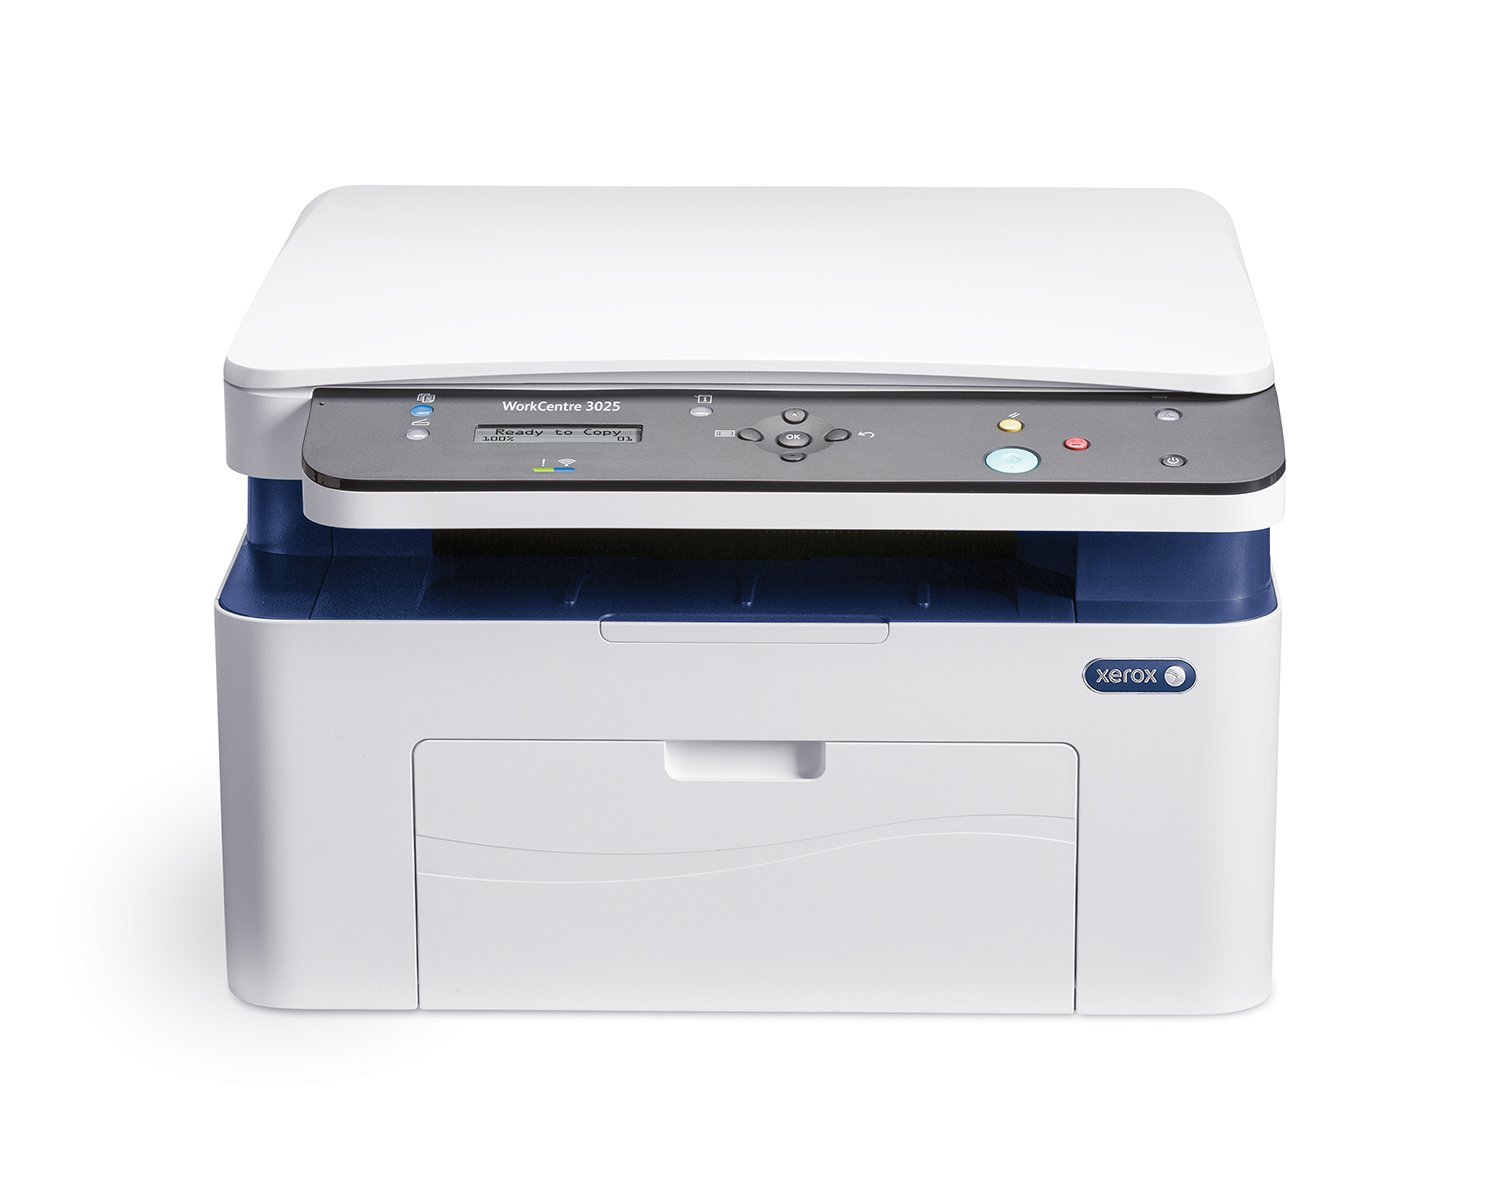 МФУ Xerox WorkCentre 3025 цена